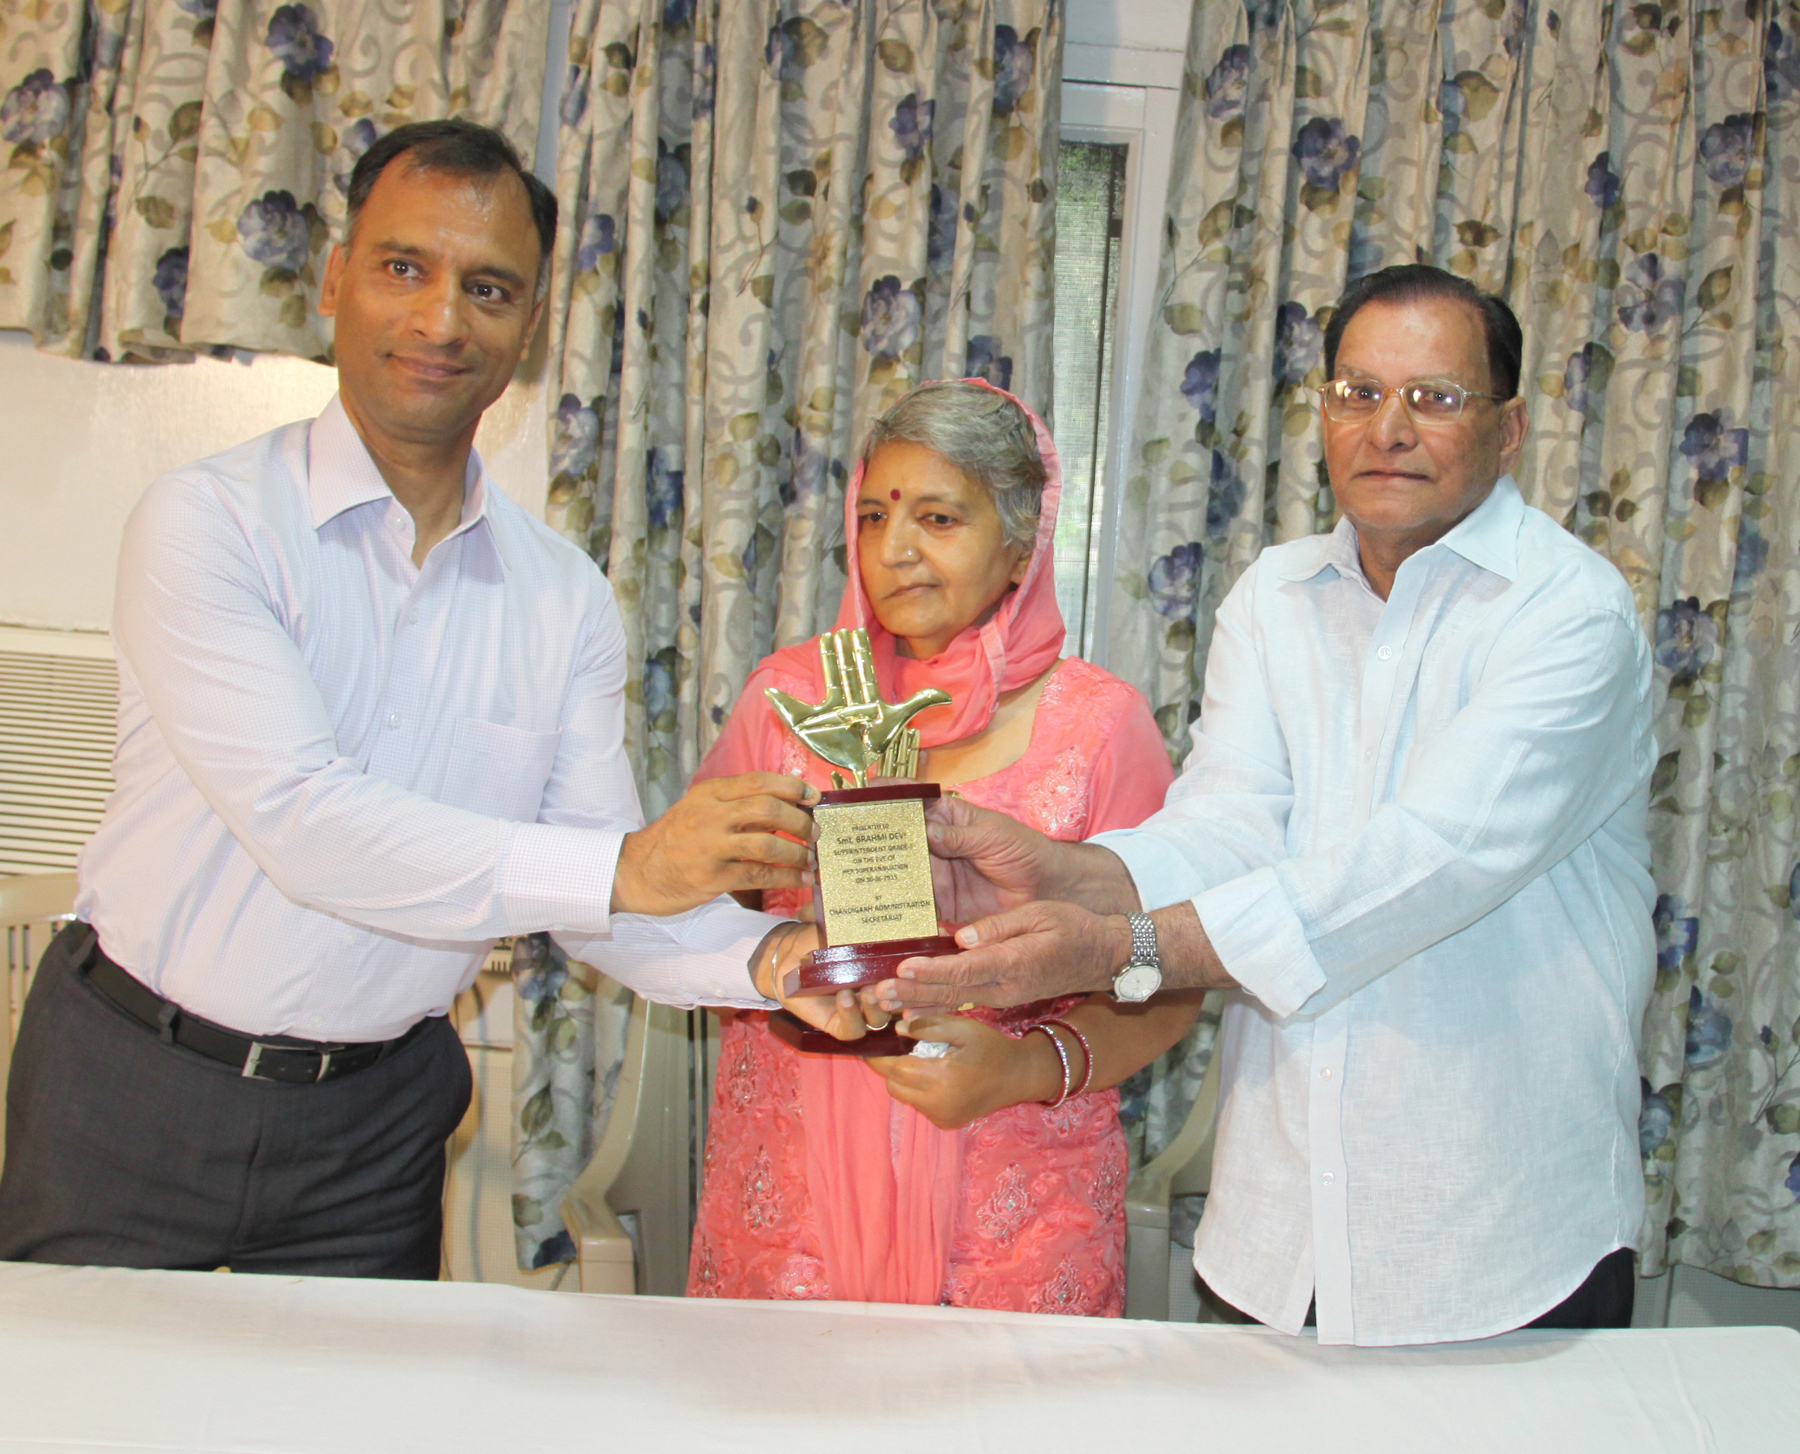 The Adviser to the Administrator, UT, Chandigarh, Mr. Vijay Dev presenting memento to Smt. Bramhi Devi, Supdt. and Sh. Amar Nath, Gate Keeper of Home Deptt. Chandigarh Administration on their retirement farewell party at UT Secretariat, Chandigarh on Tuesday, June 30, 2015.